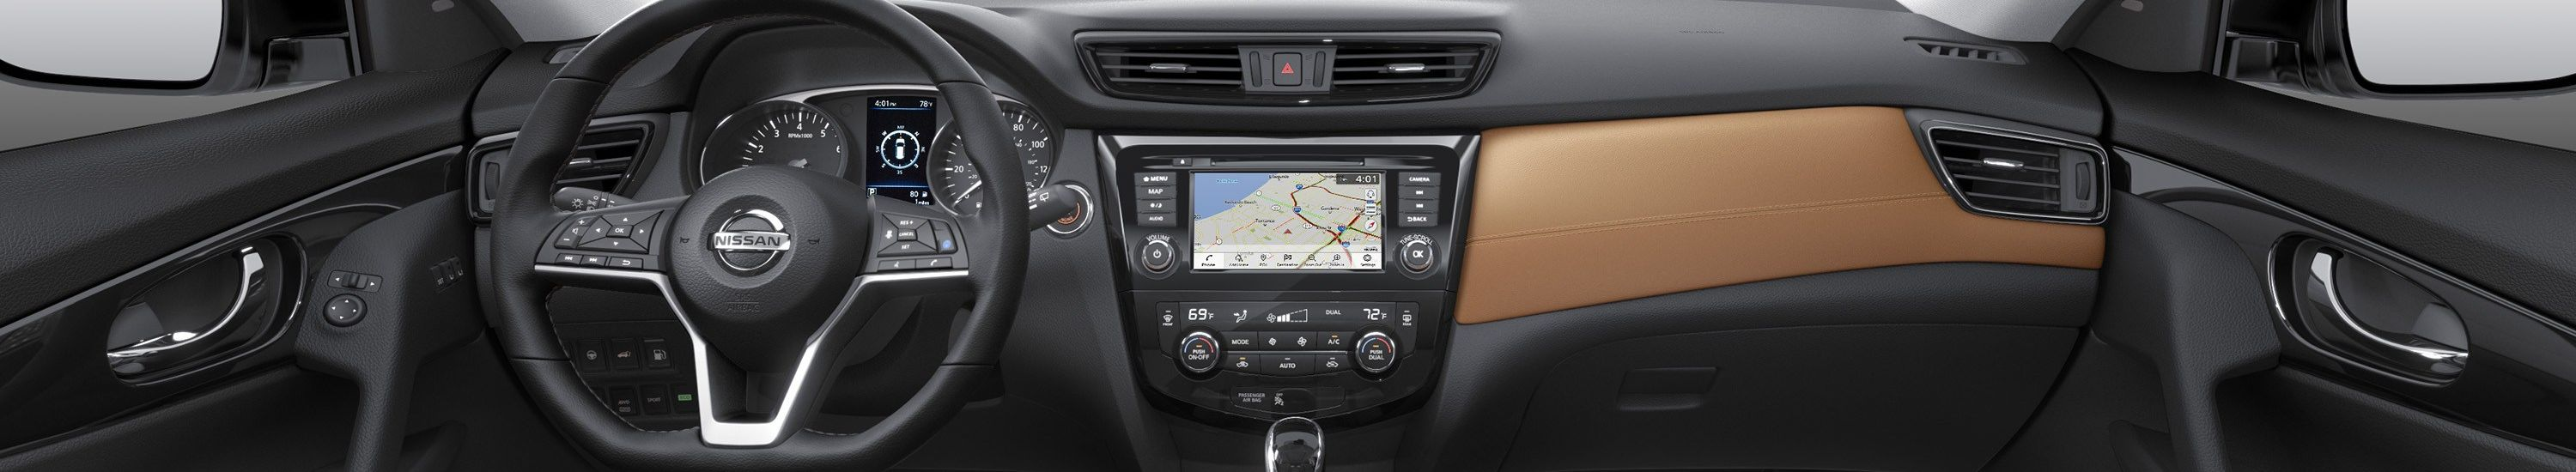 2019 Nissan Rogue Center Console